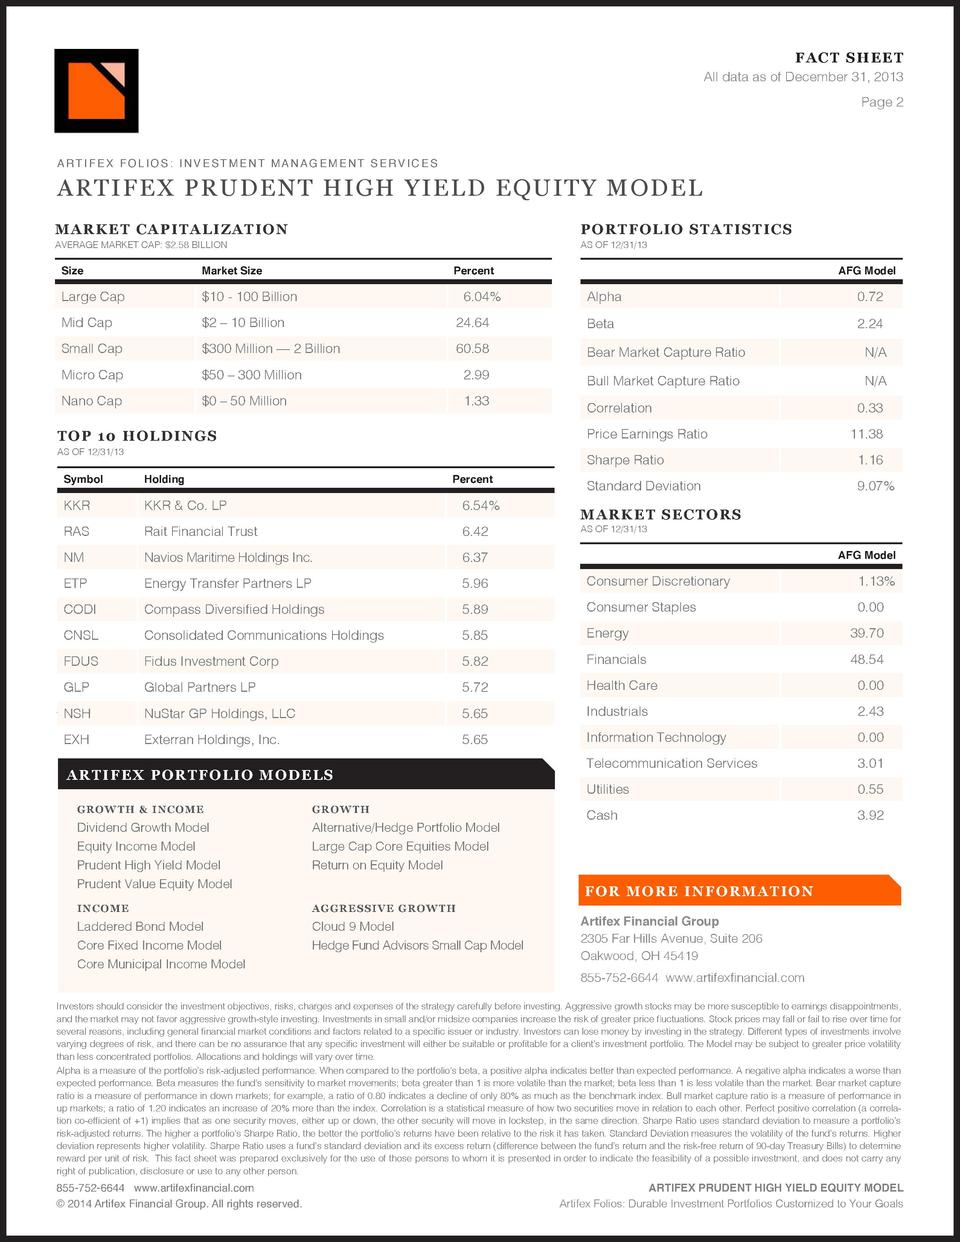 FAC T SHEET All data as of December 31, 2013 Page 2  ARTIFEX PRUDENT HIGH YIELD EQUITY MODEL MARK ET CAP I TA LIZ A T IO N...